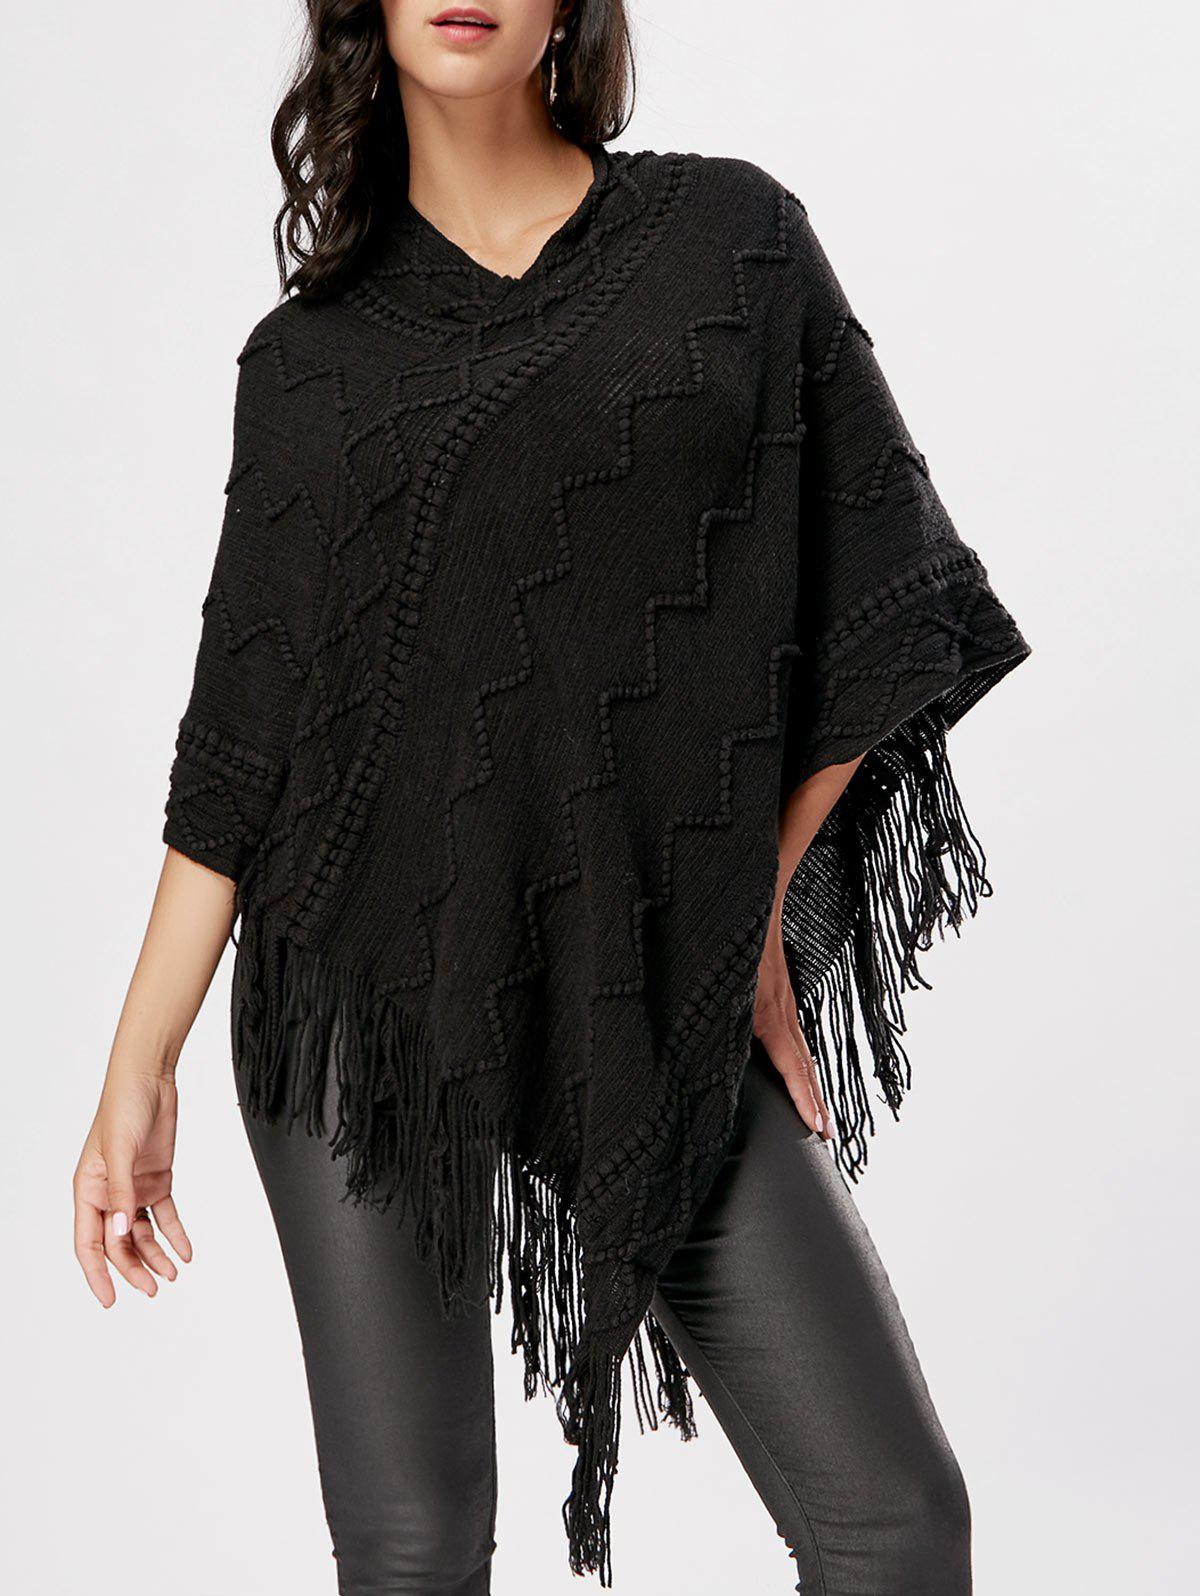 V Neck Fringe Knitted Cape - BLACK S